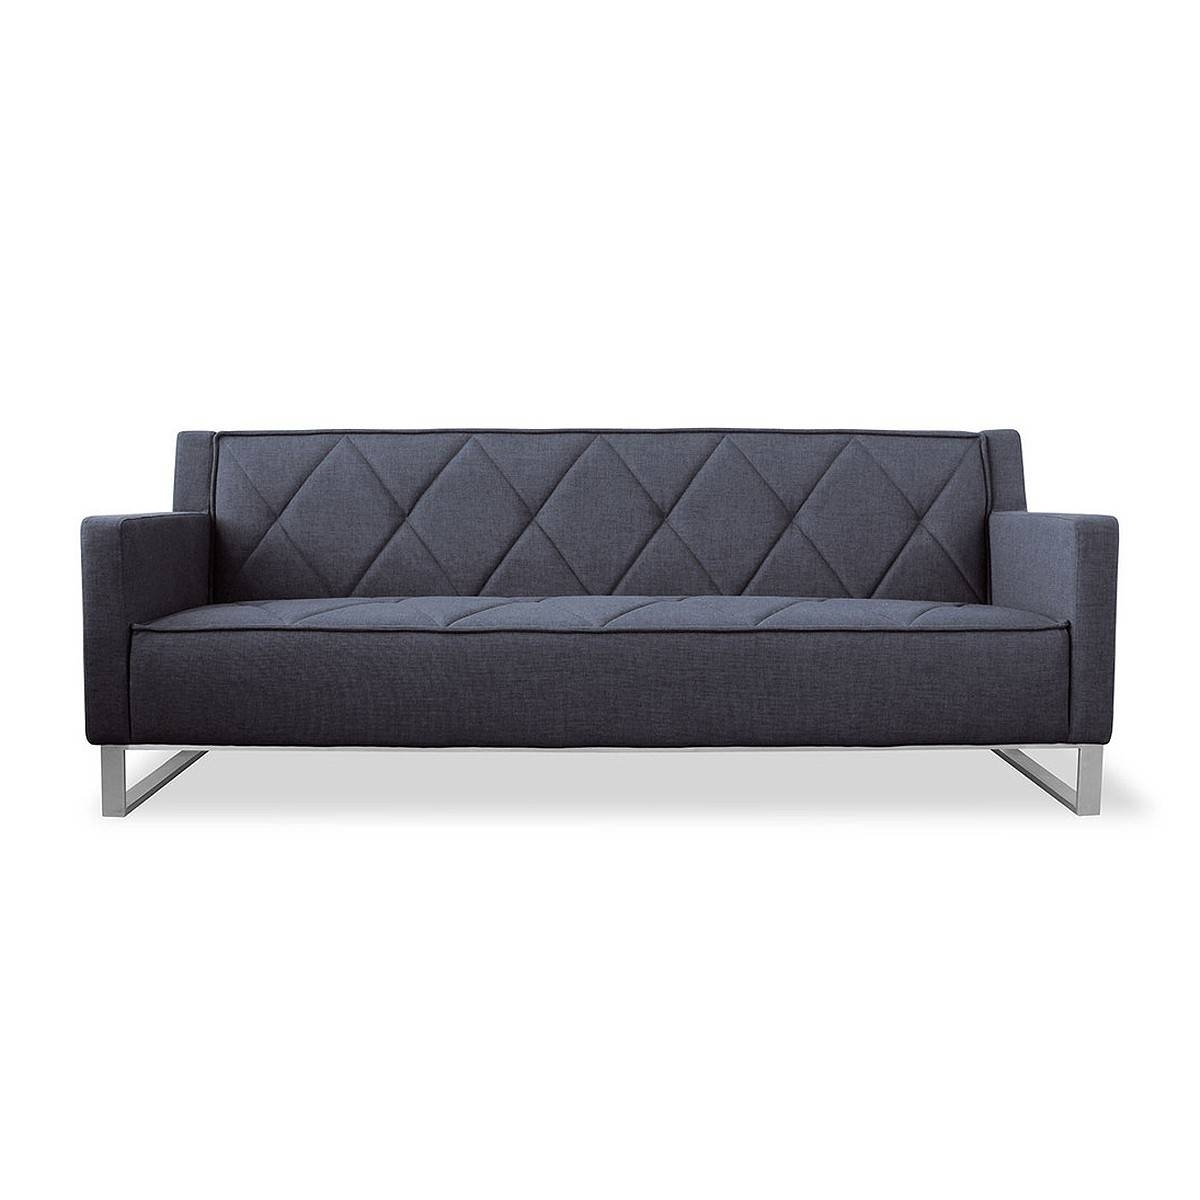 Gus Modern - Thatcher 3 Seater Sofa - Modern Sofas For Your Living throughout Modern 3 Seater Sofas (Image 12 of 30)